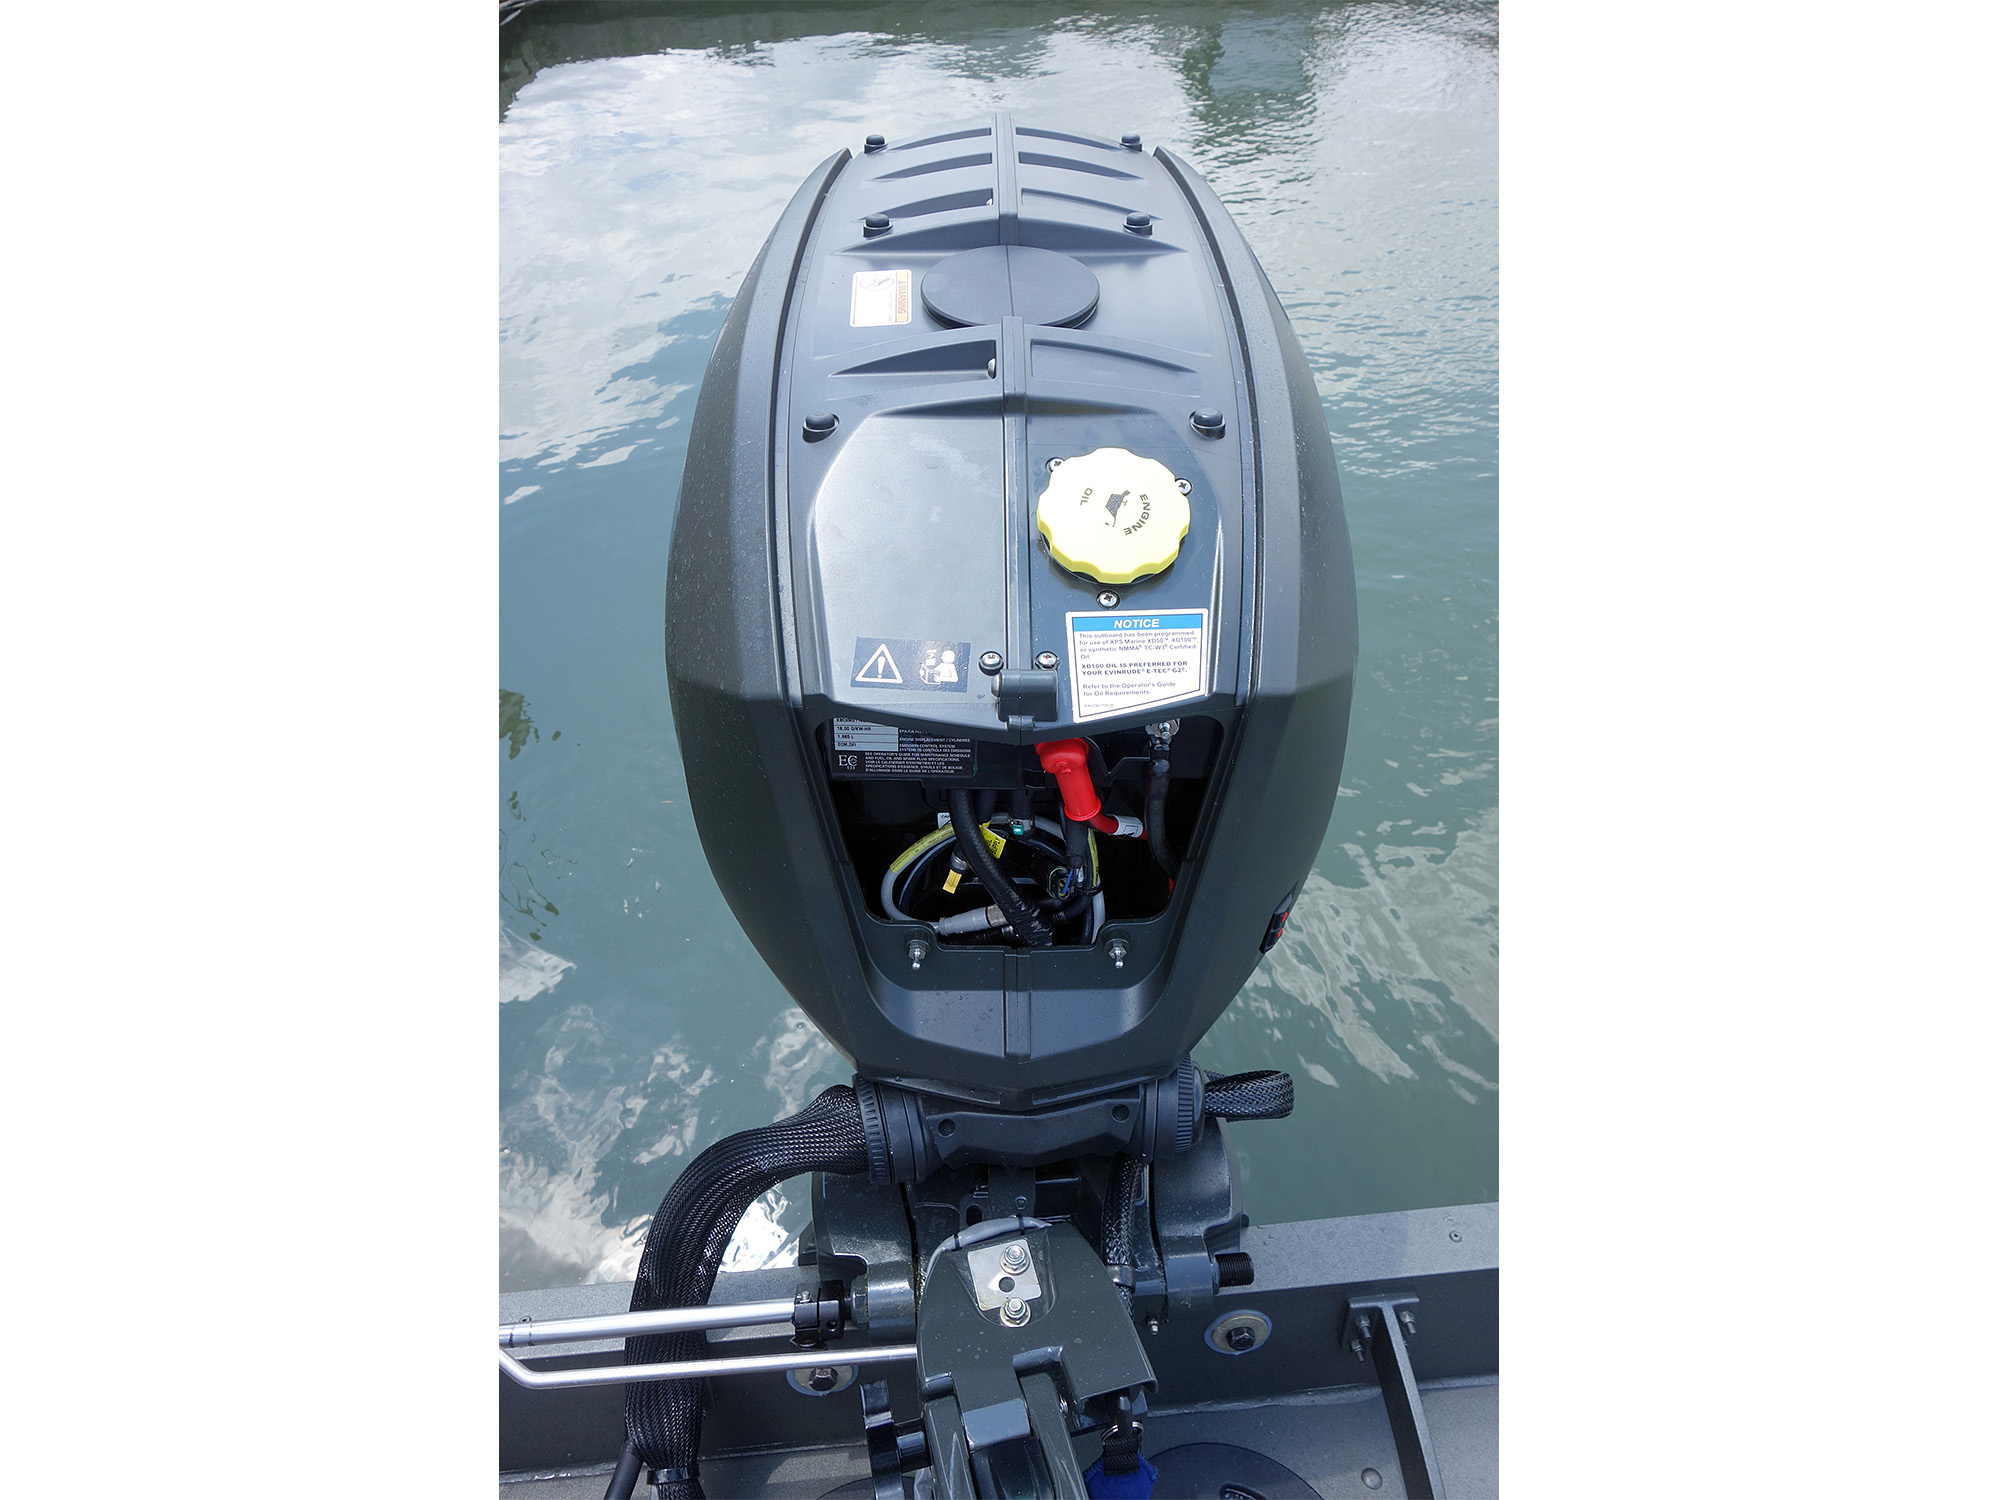 Evinrude Introduces the E-TEC G2 115, 140 and 150 hp Outboards